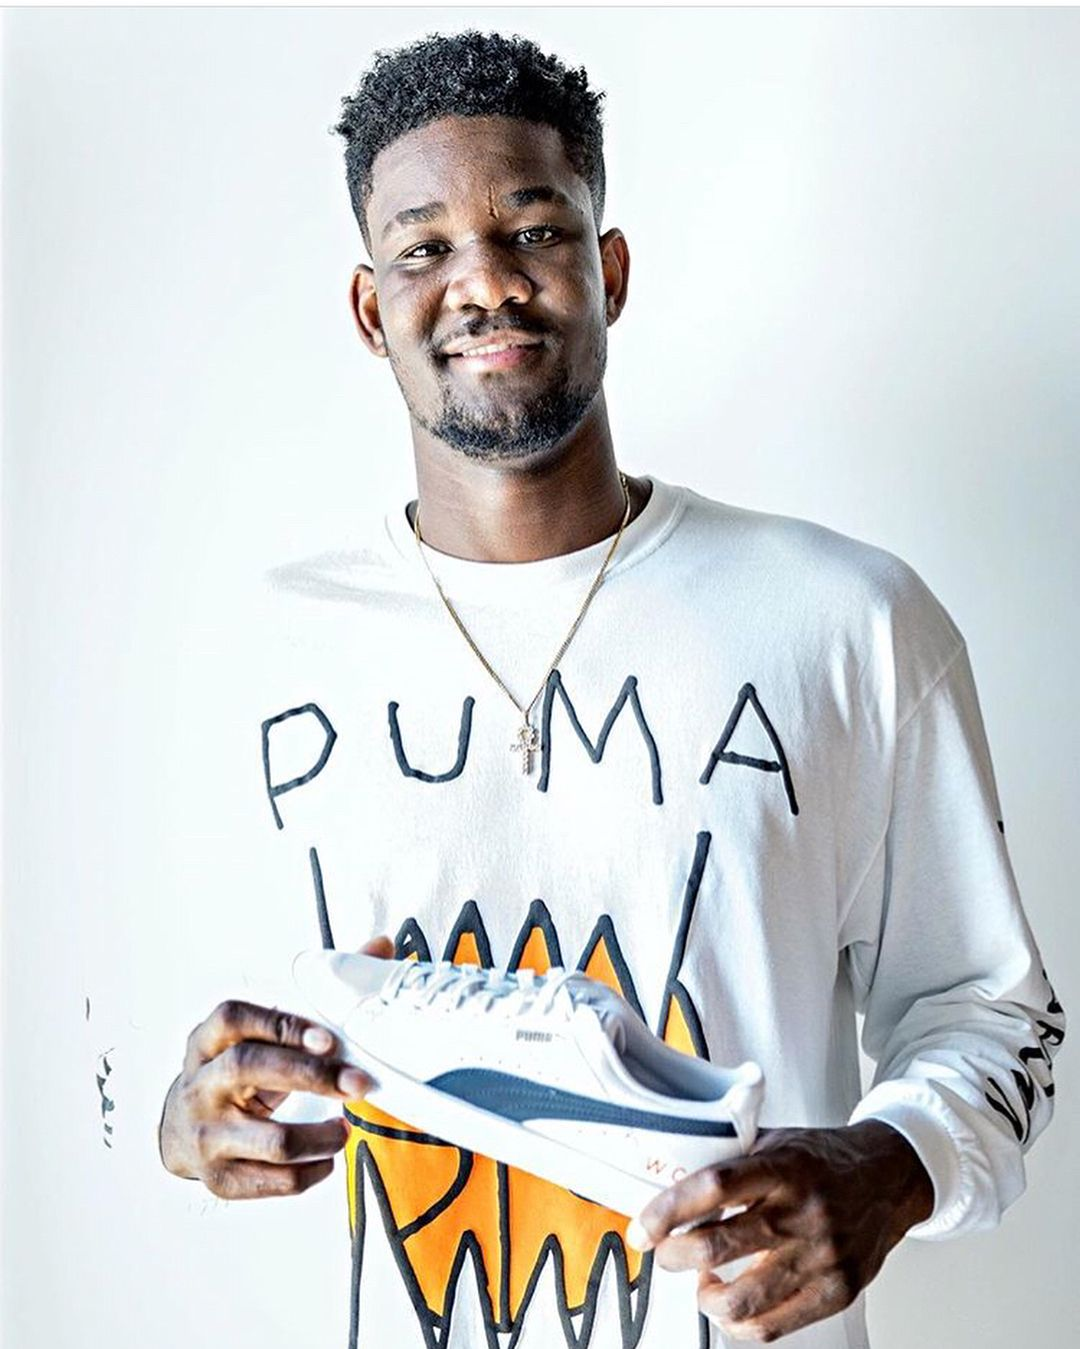 a22eaee35116 puma re-launched their basketball line with deandre ayton marvin bagley and  nba legend walt frazier and theyre also bringing on jay-z to serve as  president ...